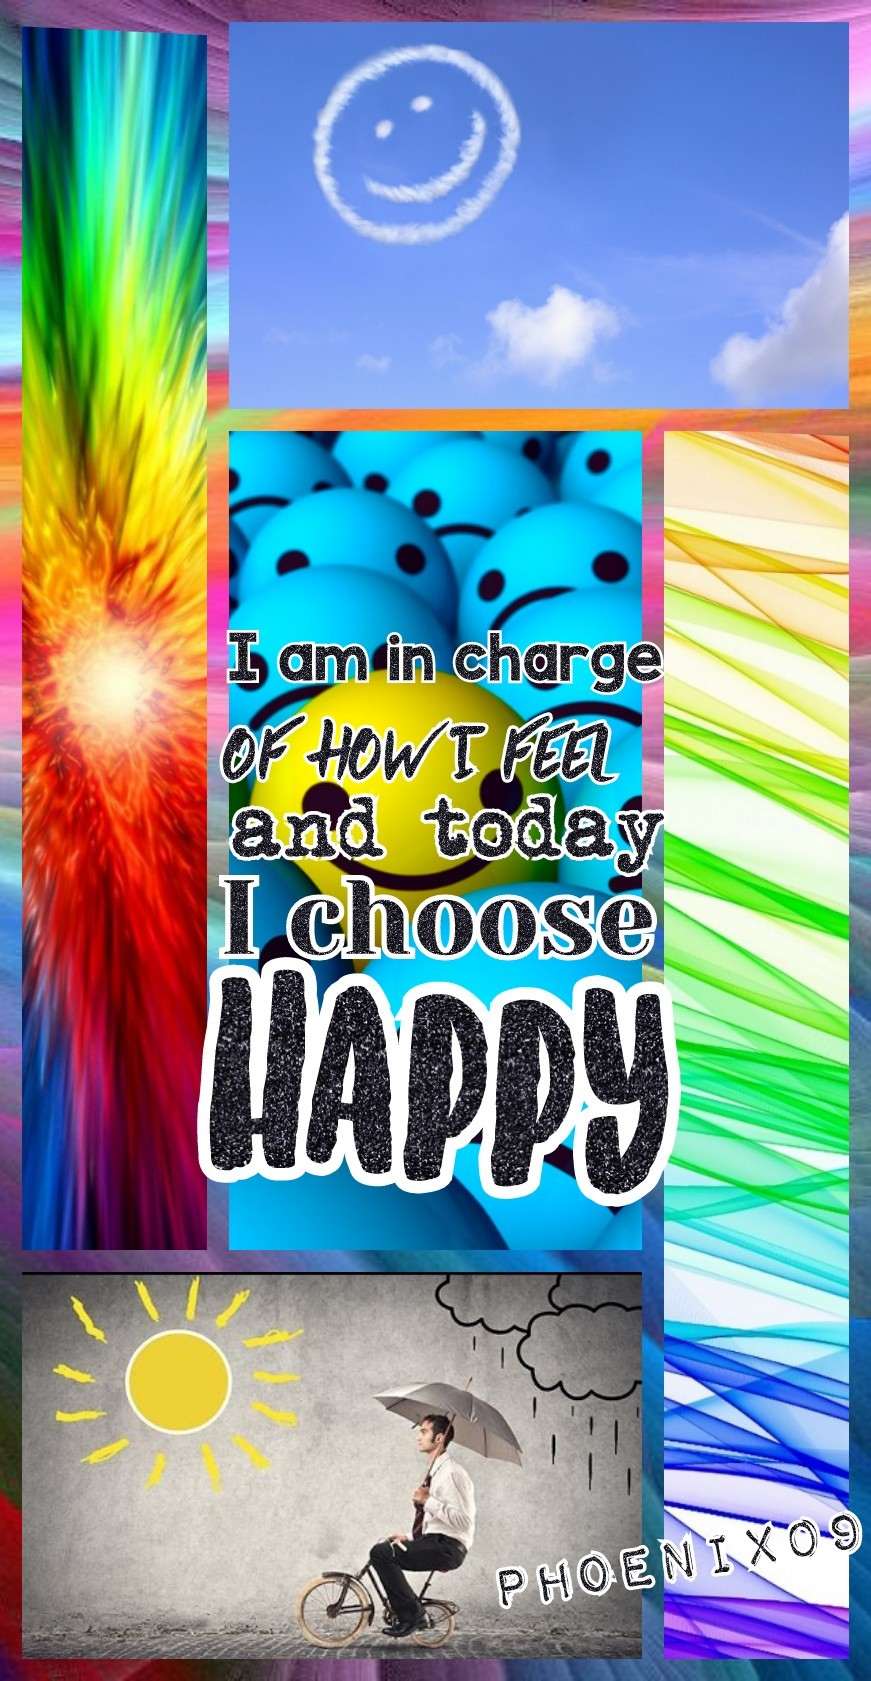 Always choose optimism Question of the Day: What makes you happy?